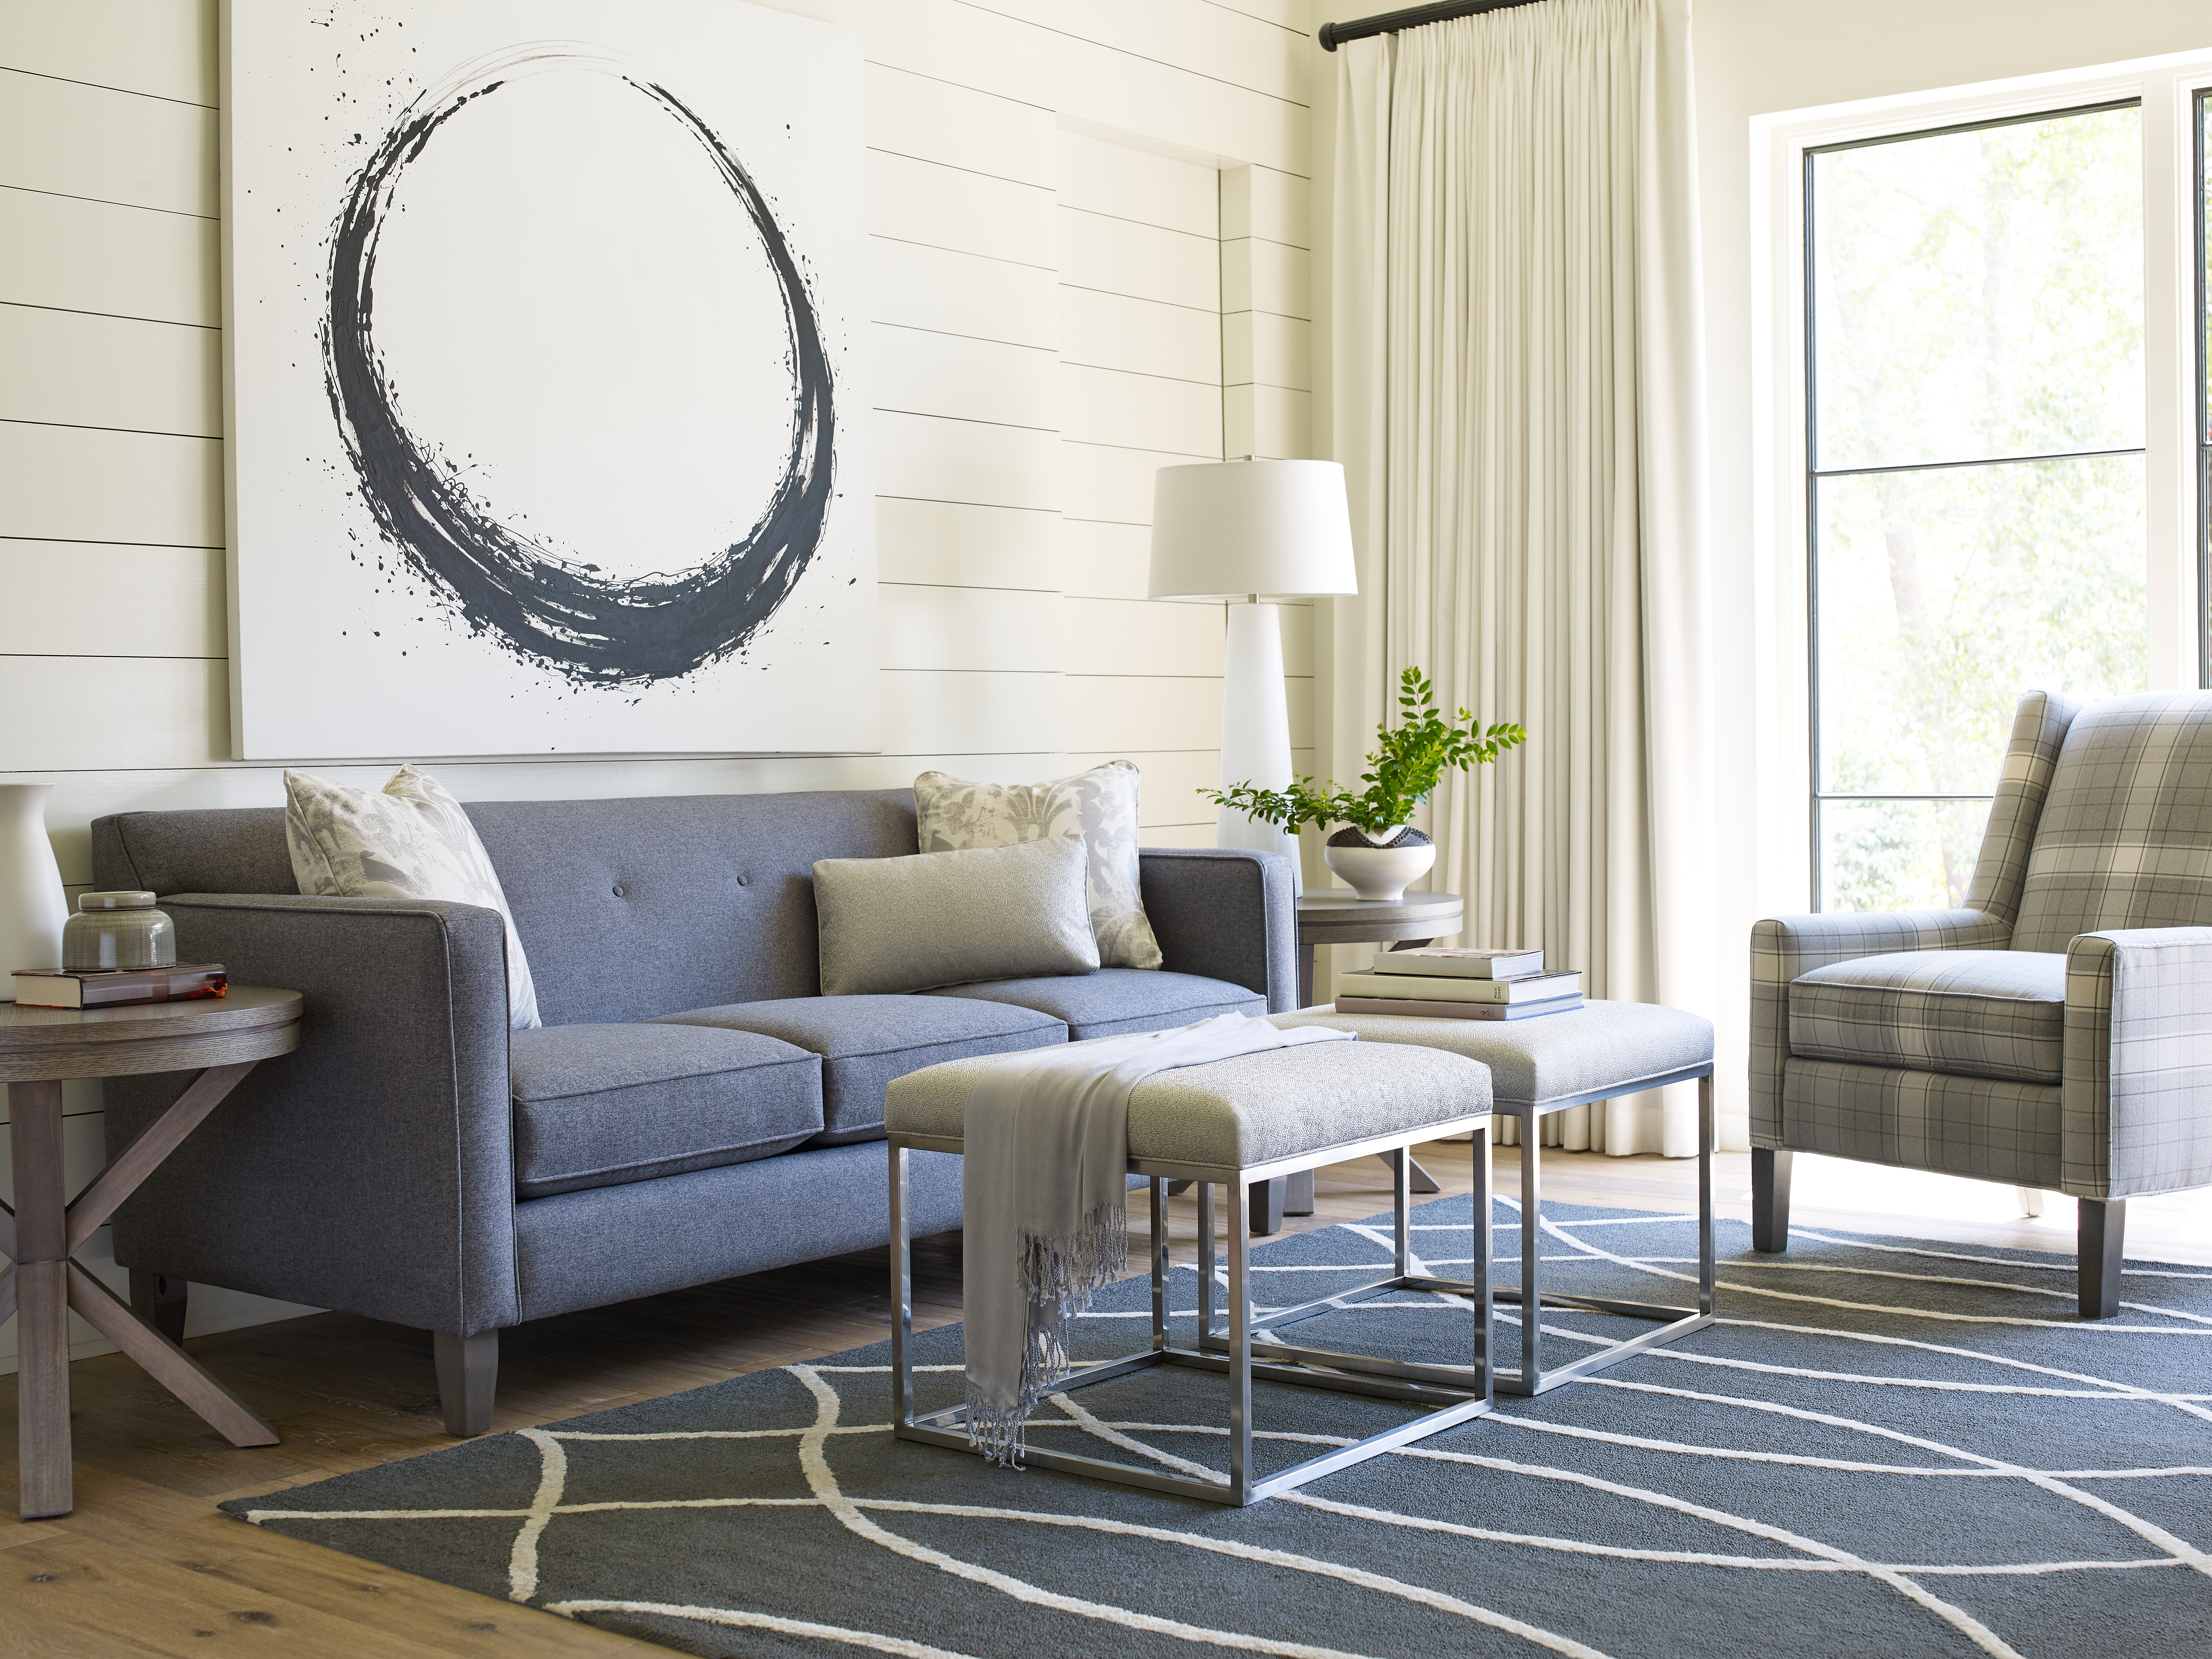 Rachael Ray Home: The Upholstered Pieces | Design by GAHS